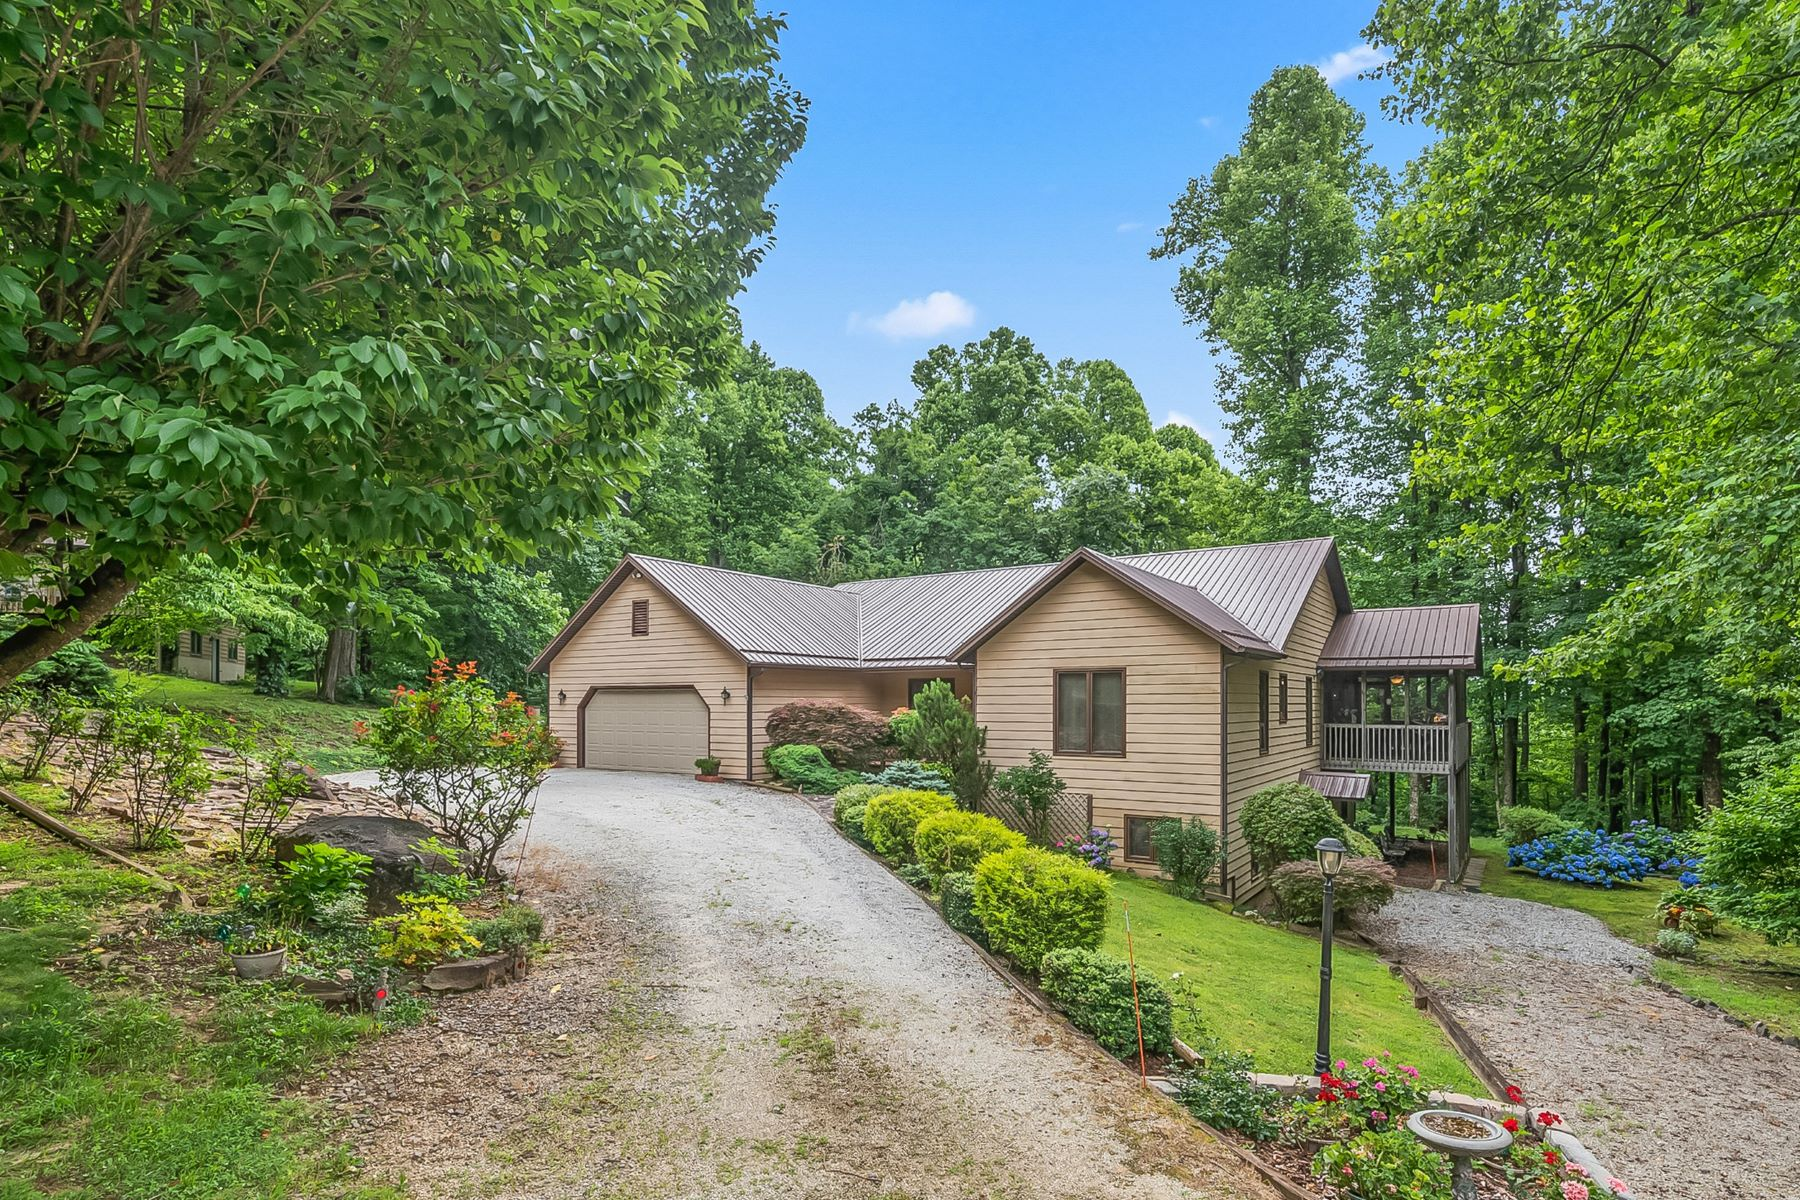 Single Family Homes for Active at 464 McKenzie Way S., Old Fort, NC 464 McKenzie Way S. Old Fort, North Carolina 28762 United States